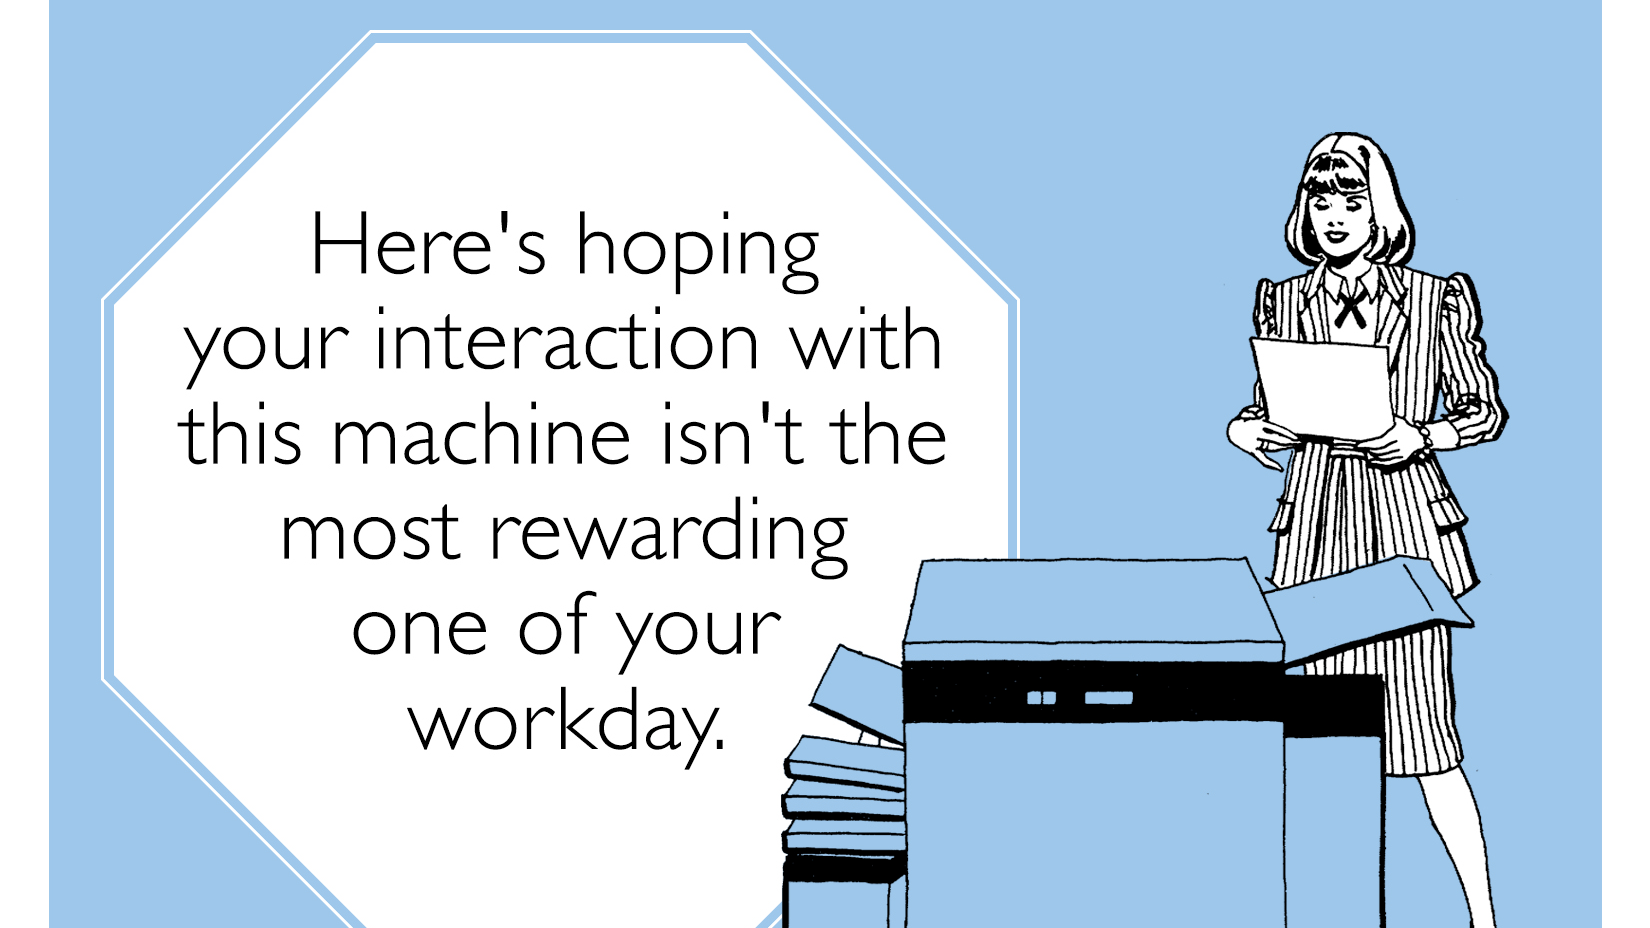 Be a hero: Print this out and put it next to the worst piece of technology in your office.